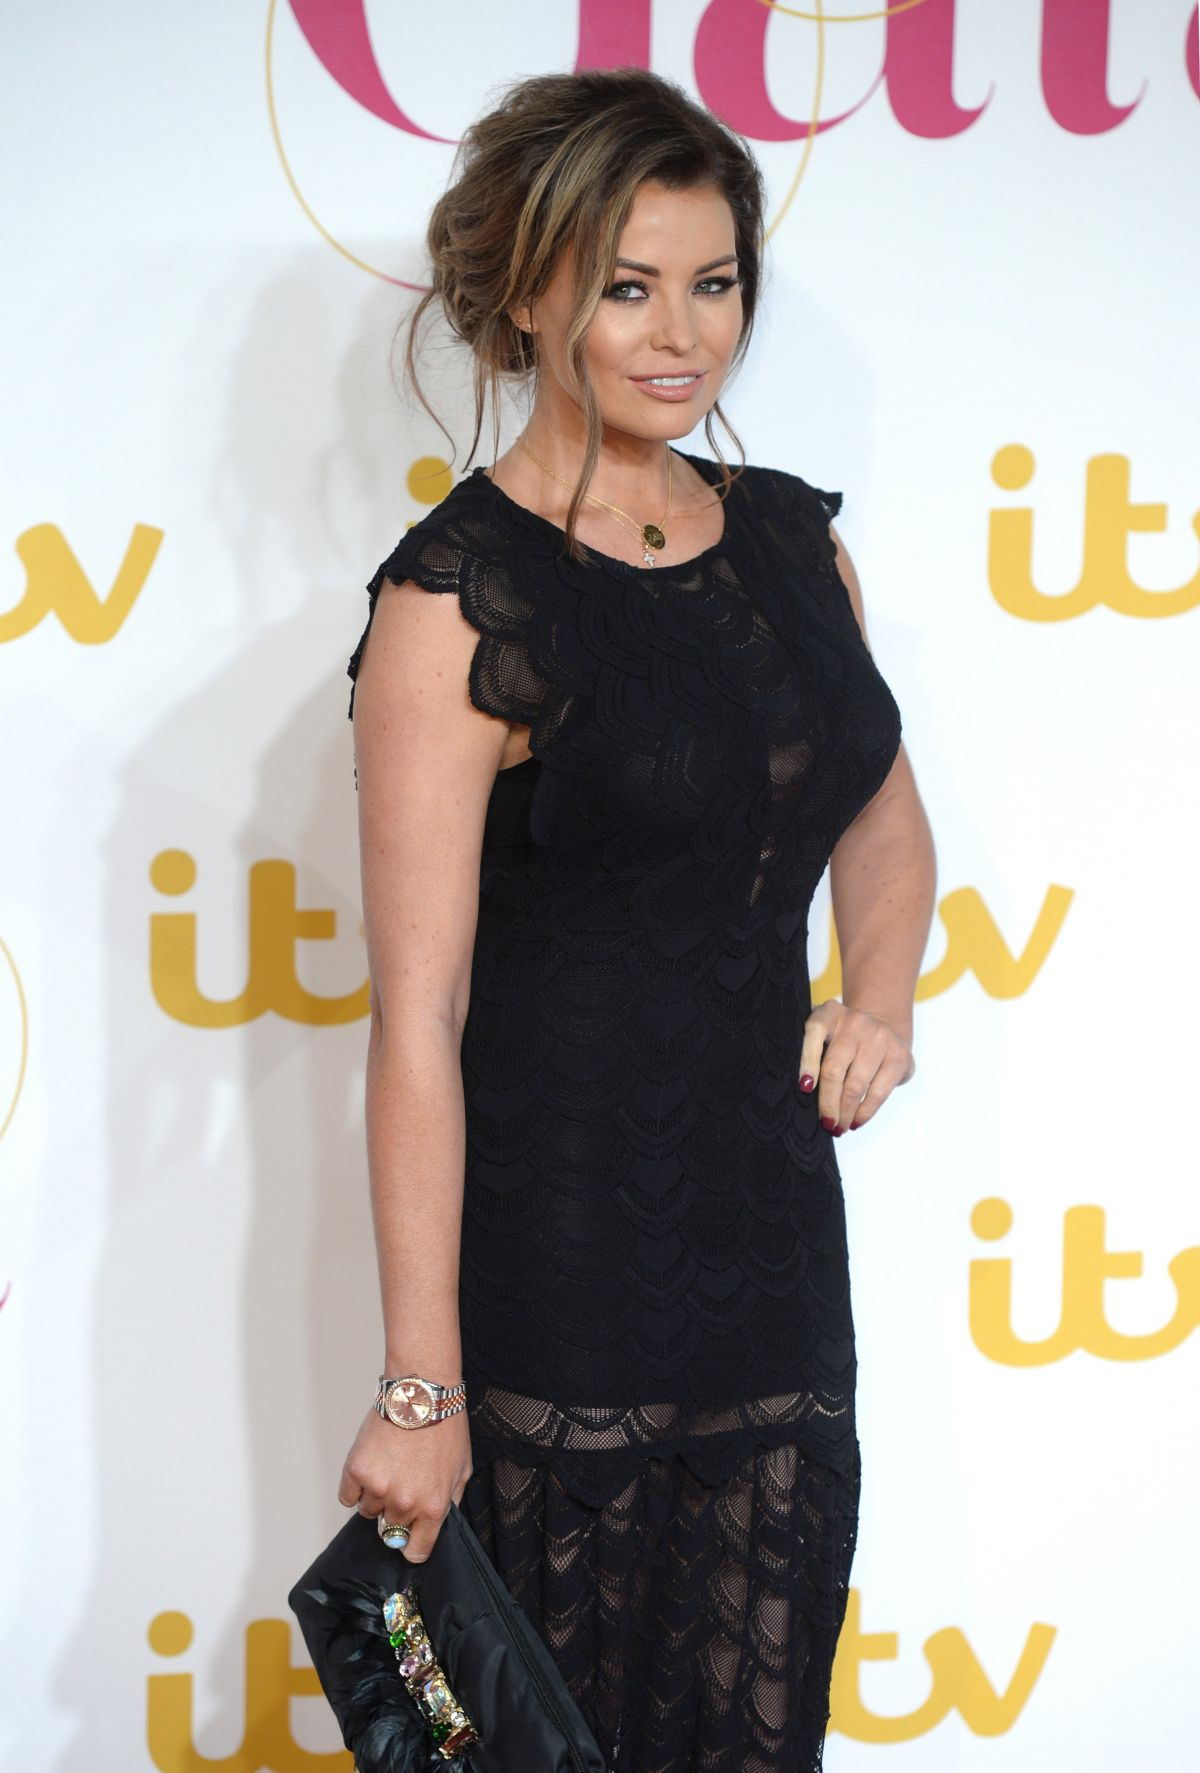 JESSICA WRIGHT at ITV 60th Anniversary Gala in London 11/19/2015